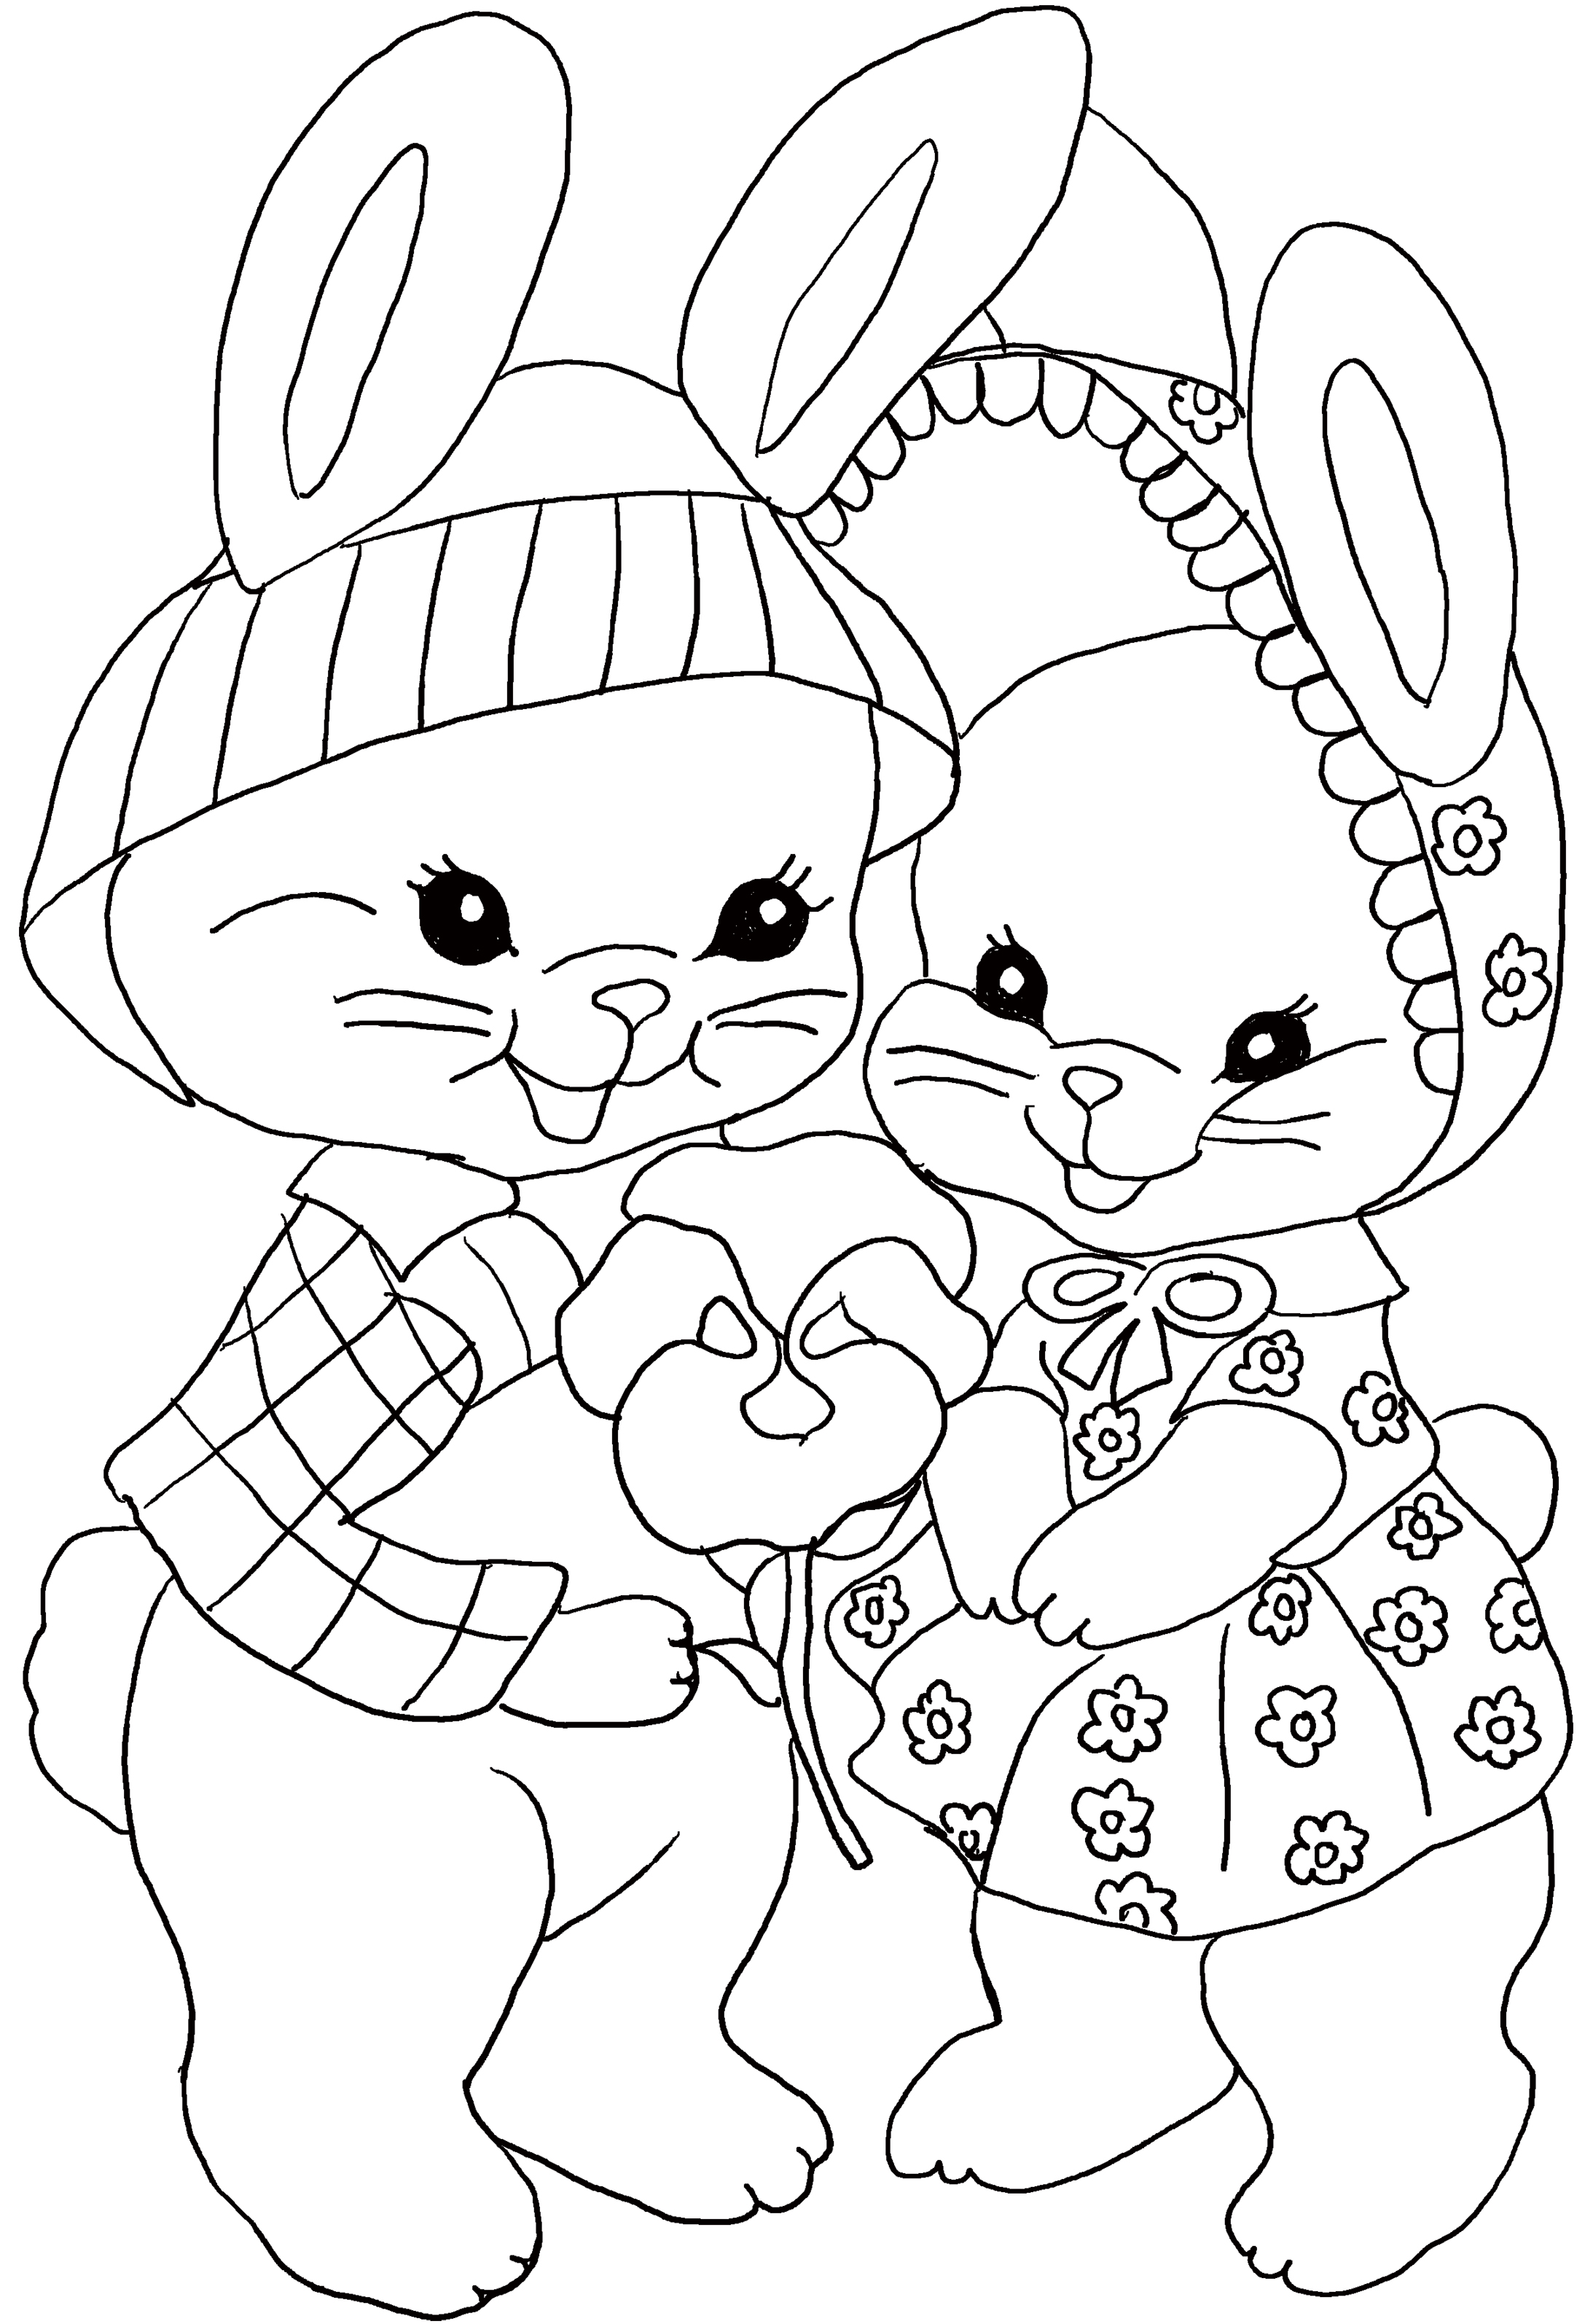 Easter coloring page for kids. Two cute bunnies with a flower